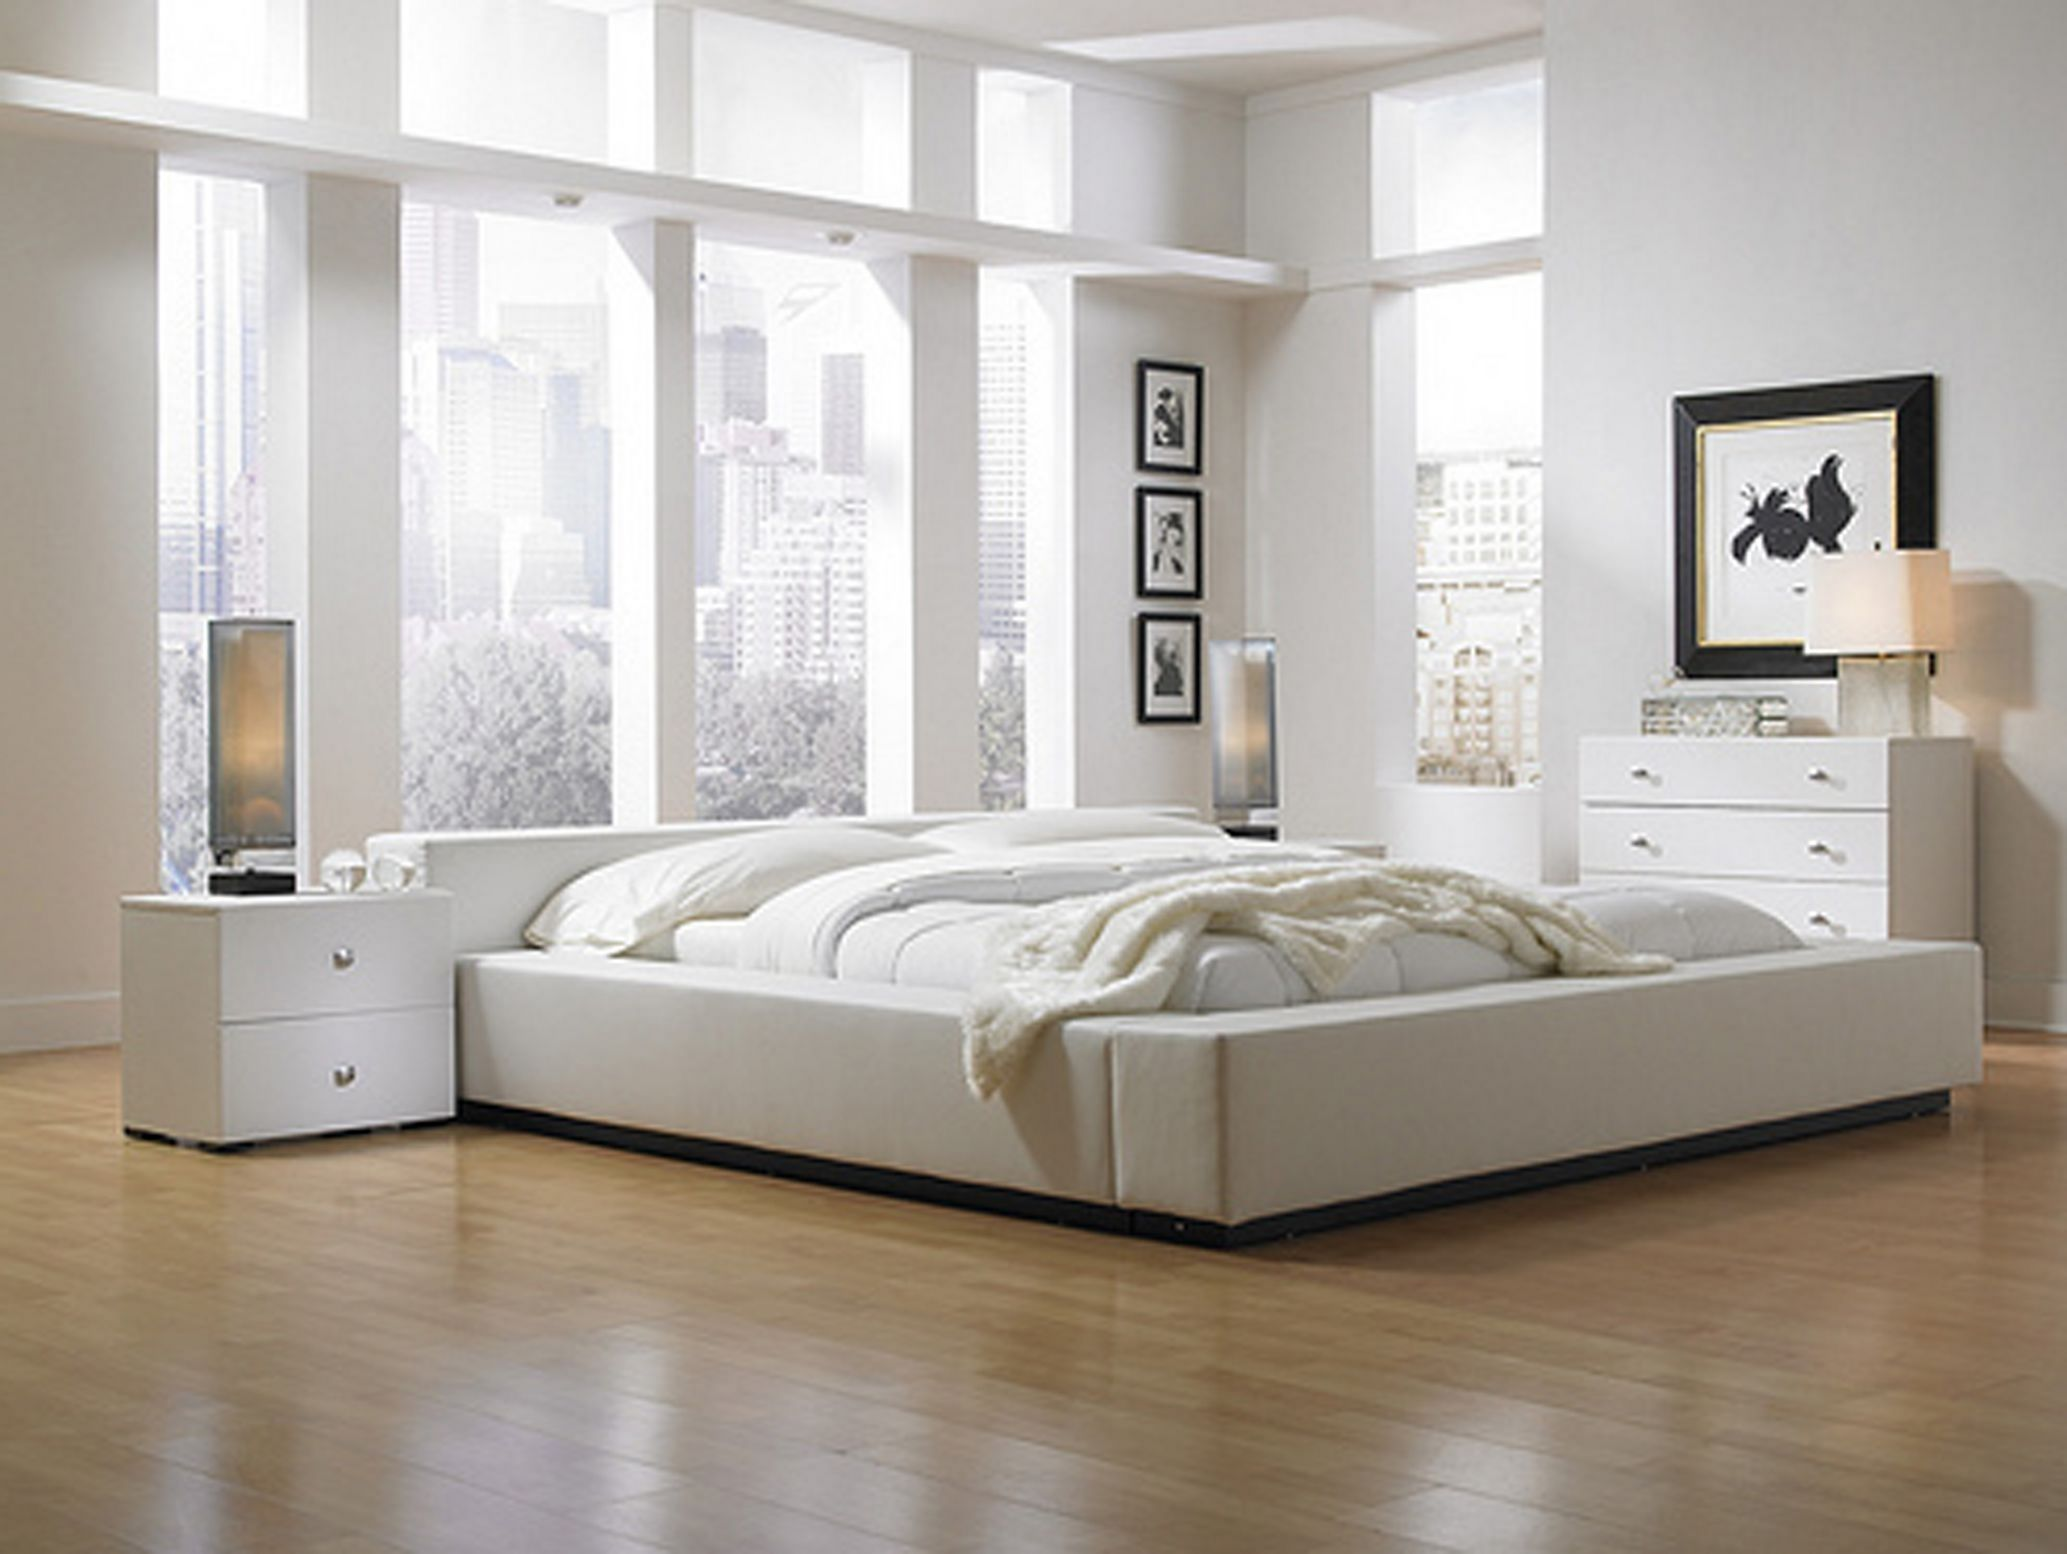 25 pleasant minimalist bedroom design ideas for your on stunning minimalist apartment décor ideas home decor for your small apartment id=49319